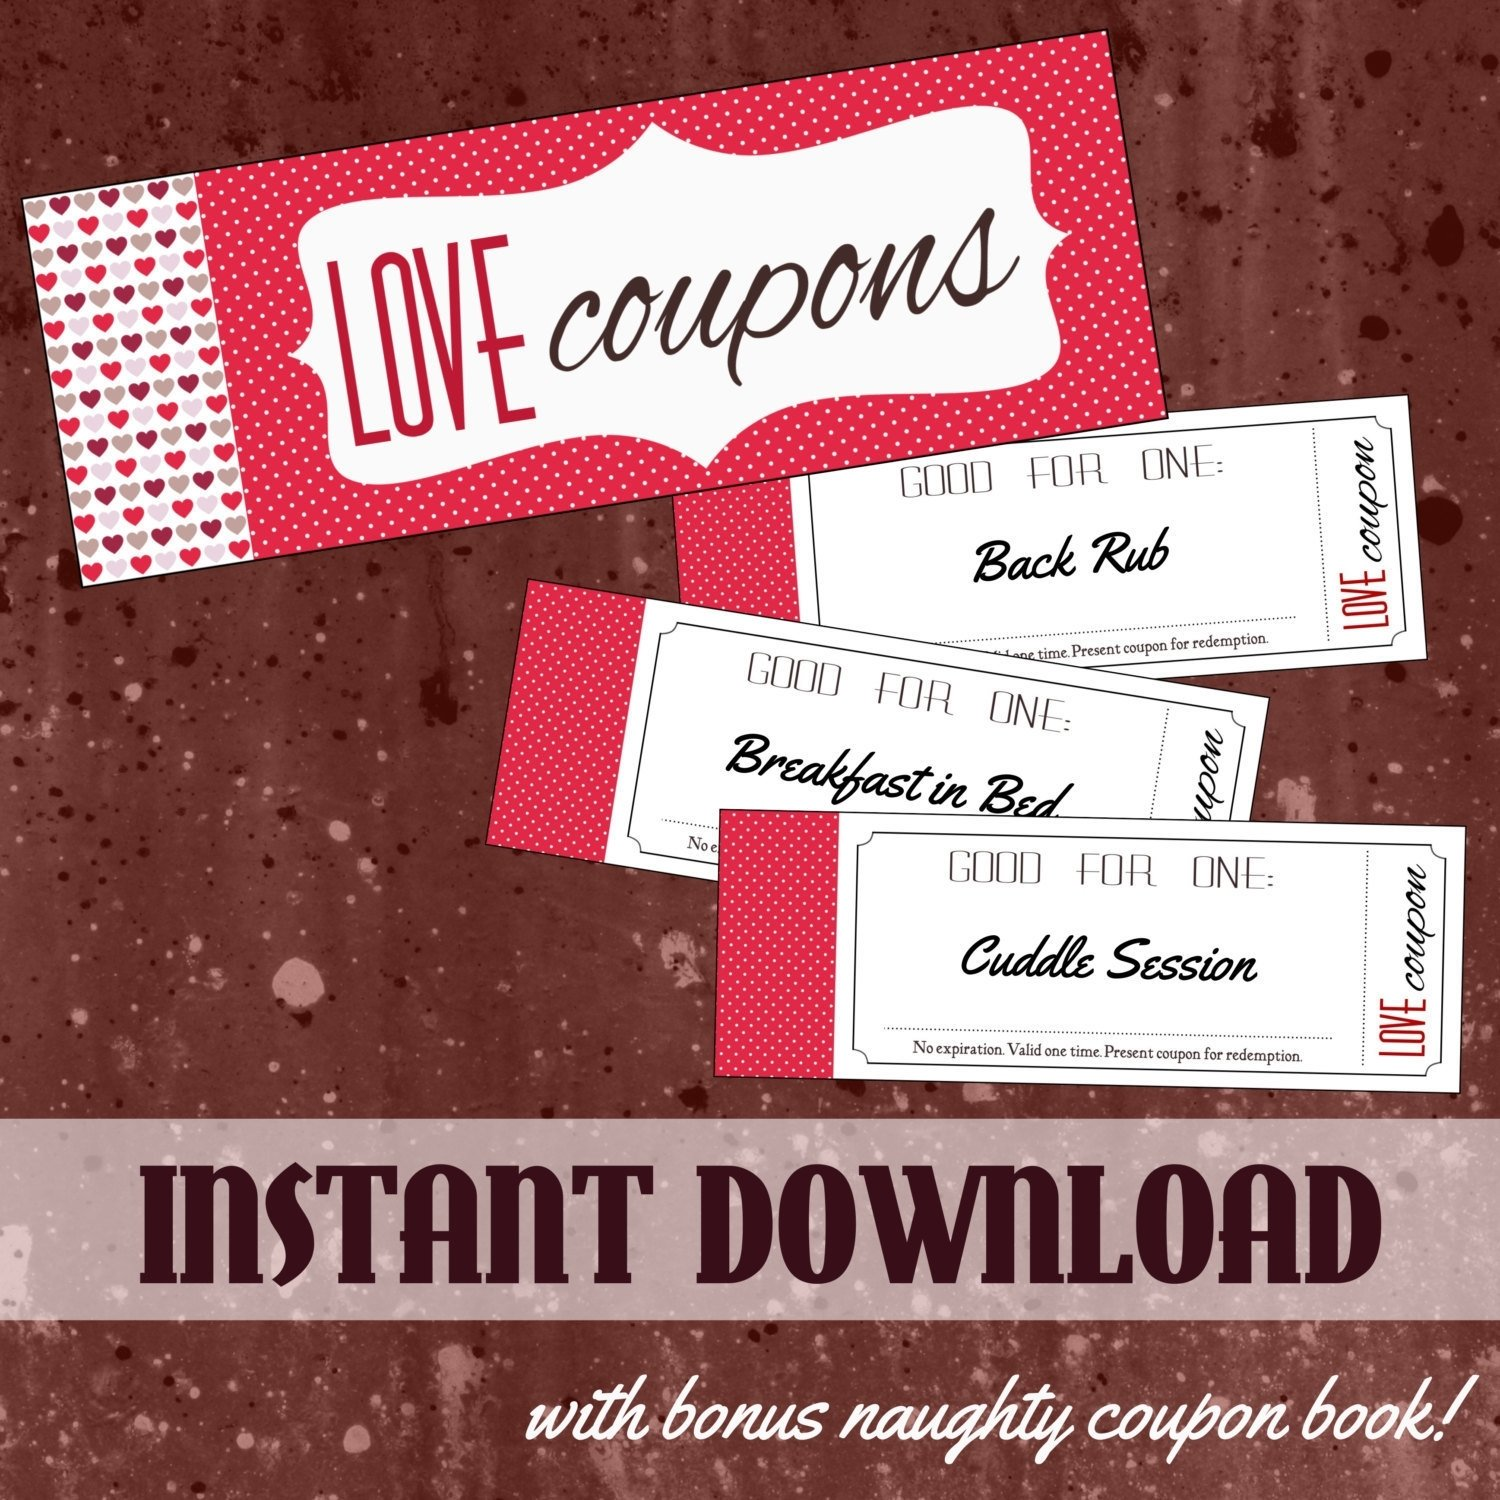 10 Stylish Love Coupon Ideas For Her printable love coupon book for him or for her with bonus naughty 3 2021